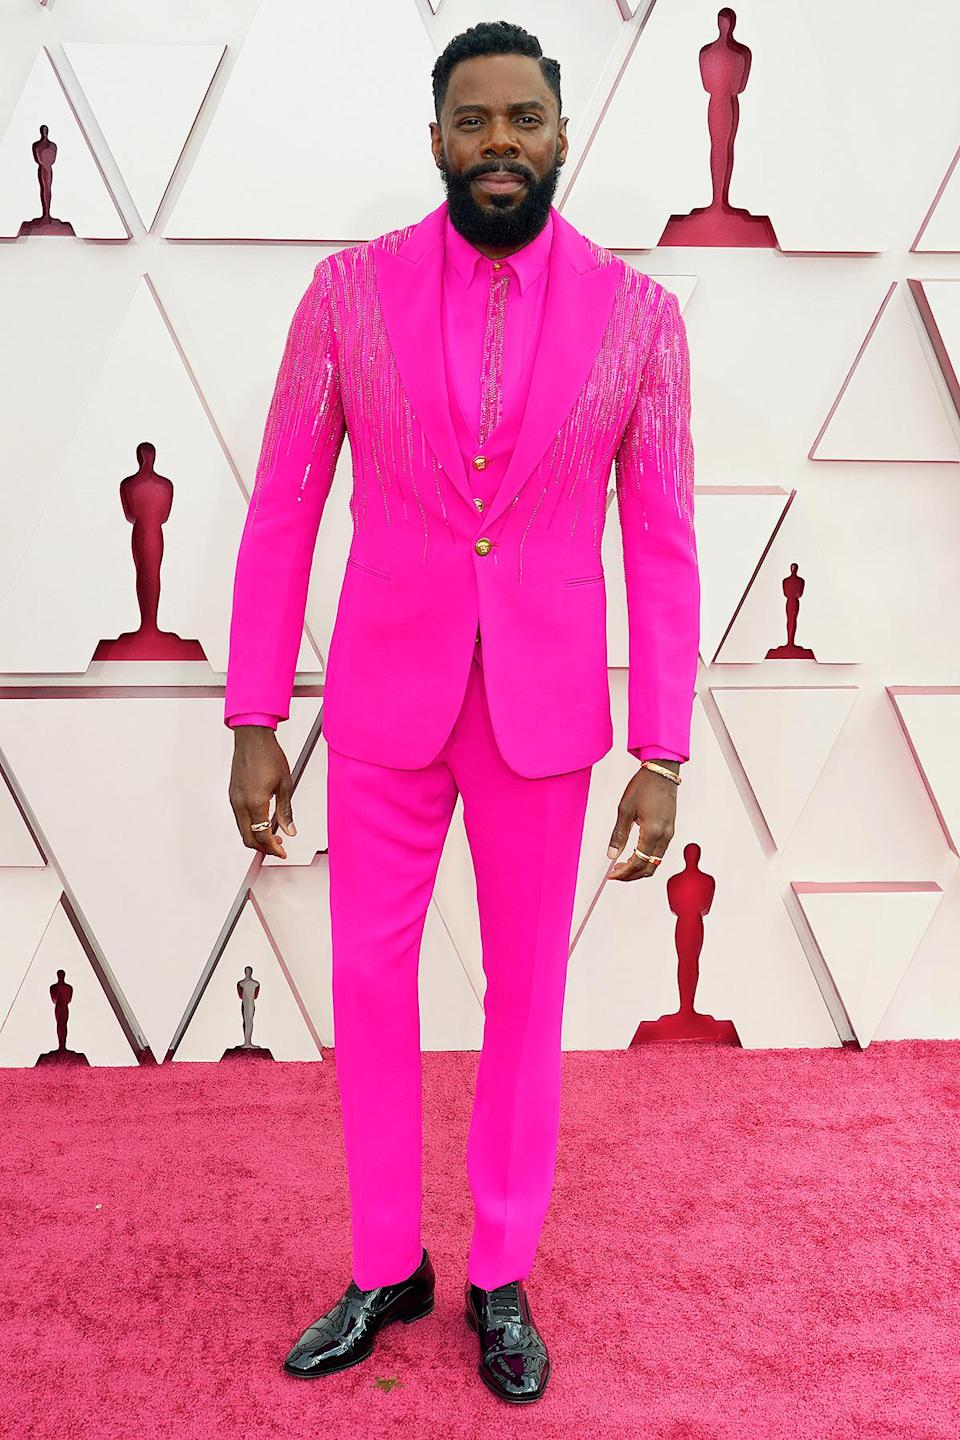 "<p>In one of the hottest shades of the moment (the dominance of which <a href=""https://ew.com/oscars/oscars-pink-red-fashion/"" rel=""nofollow noopener"" target=""_blank"" data-ylk=""slk:began at last year's Oscars"" class=""link rapid-noclick-resp"">began at last year's Oscars</a>), the <i>Ma Rainey's Black Bottom </i>star — also styled by Wayman and Micah — dazzled in a bold fuchsia three-piece suit from Atelier Versace, embroidered with Swarovski crystals.</p>"